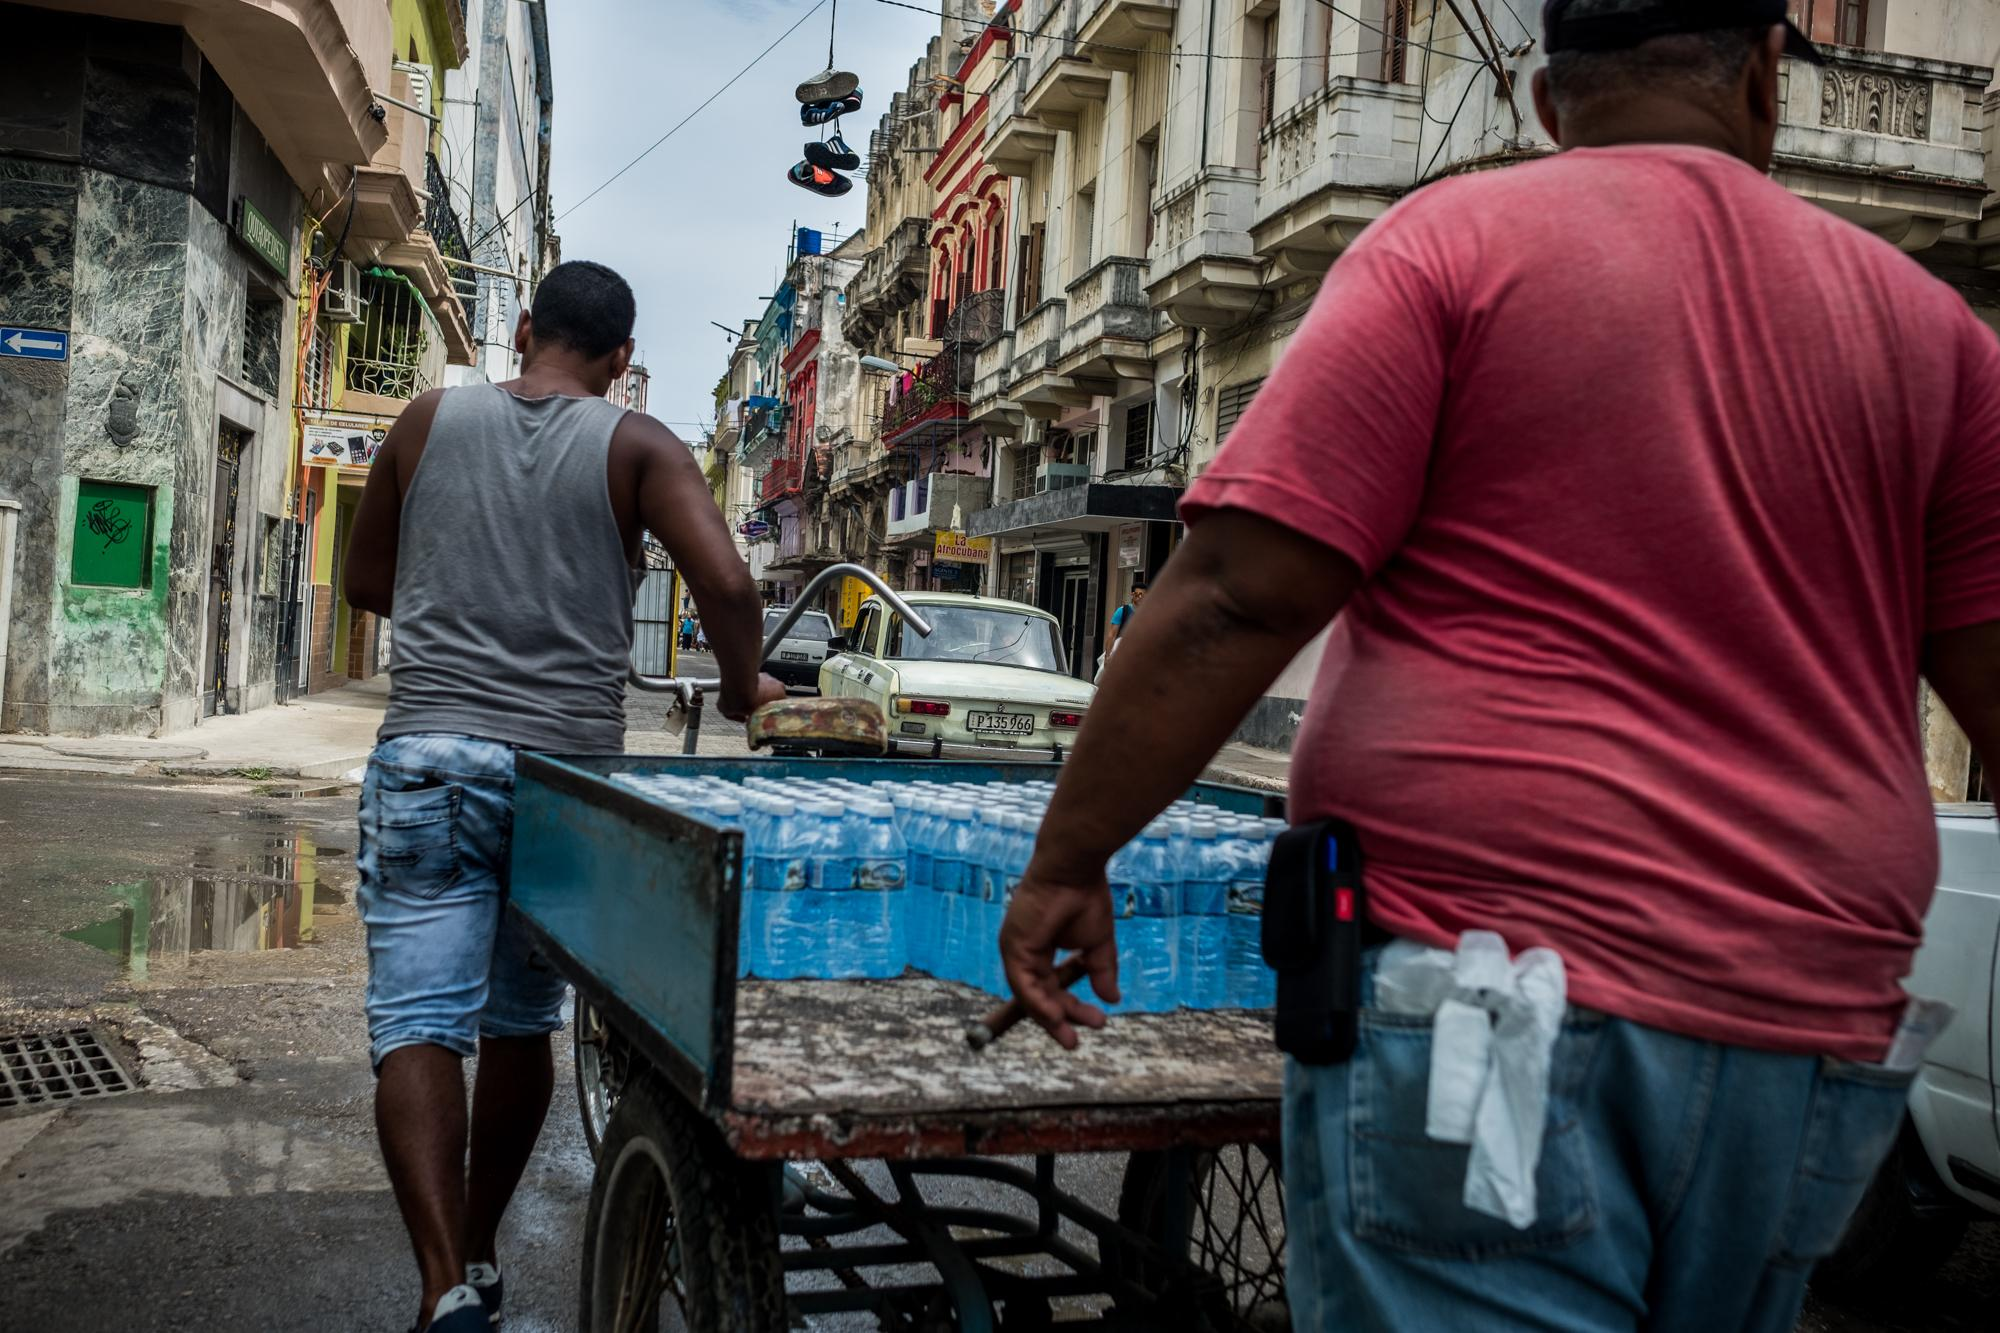 The irregularities in the water supply make clean bottled drinking water a daily necessity. Water is distributed to the -pretty much- empty shops in Central Havana. Havana, 9-4-2019